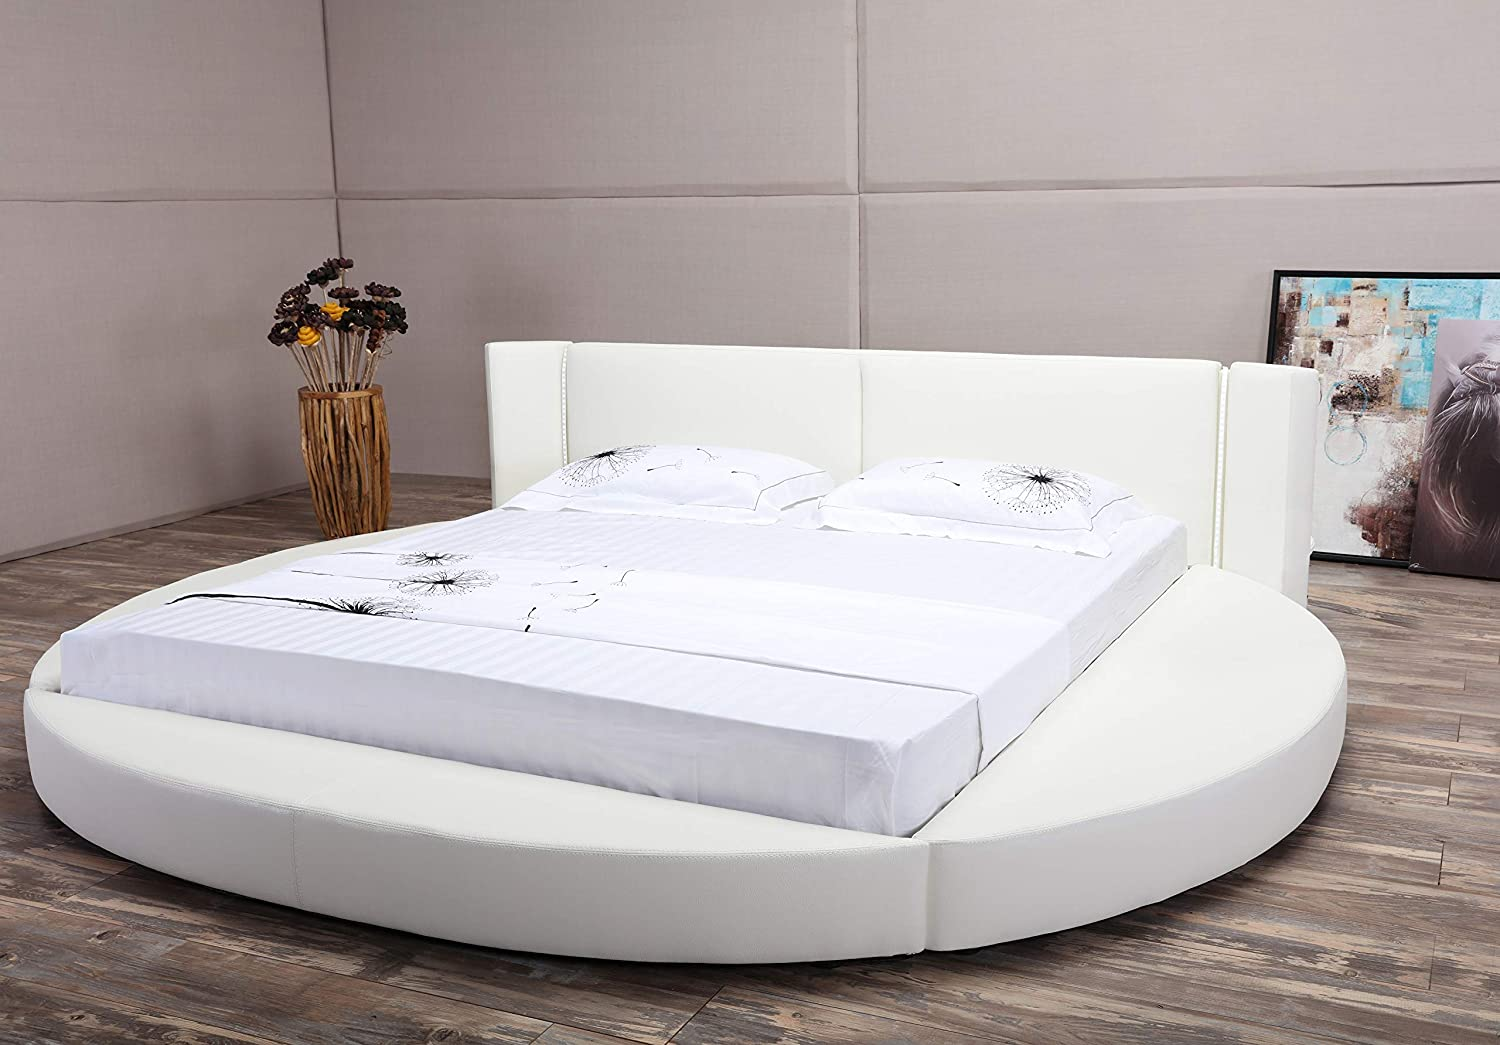 Oslo X Round Bed Queen Size White Amazonca Home Kitchen